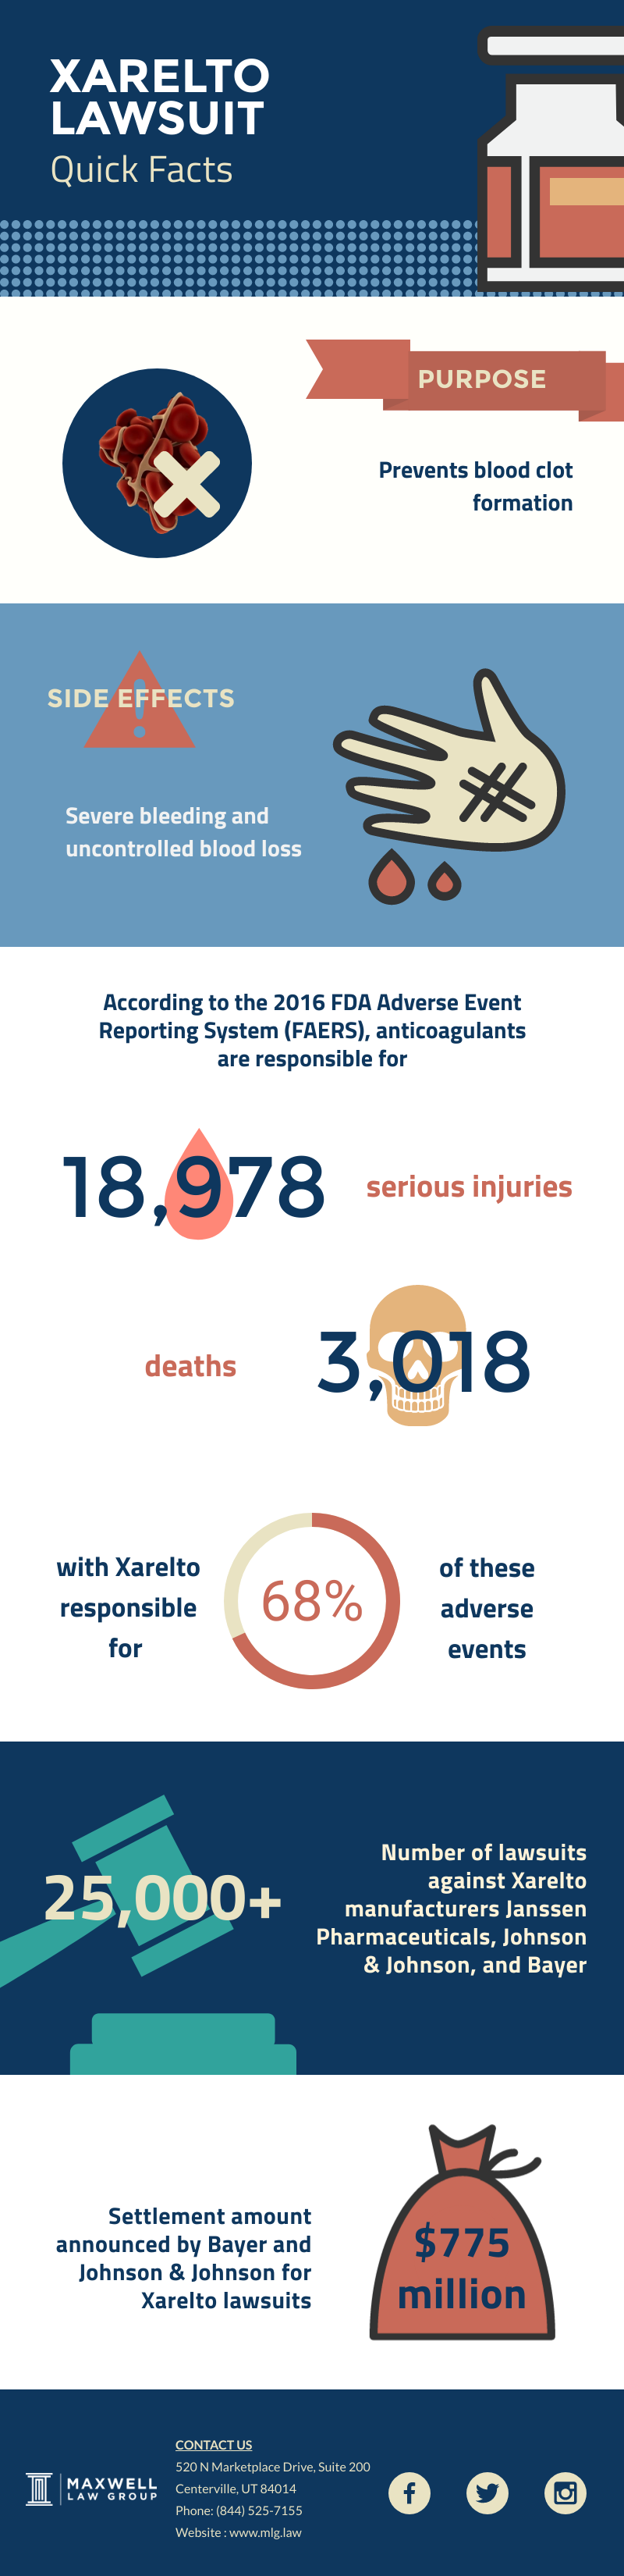 xarelto lawsuit overview infographic